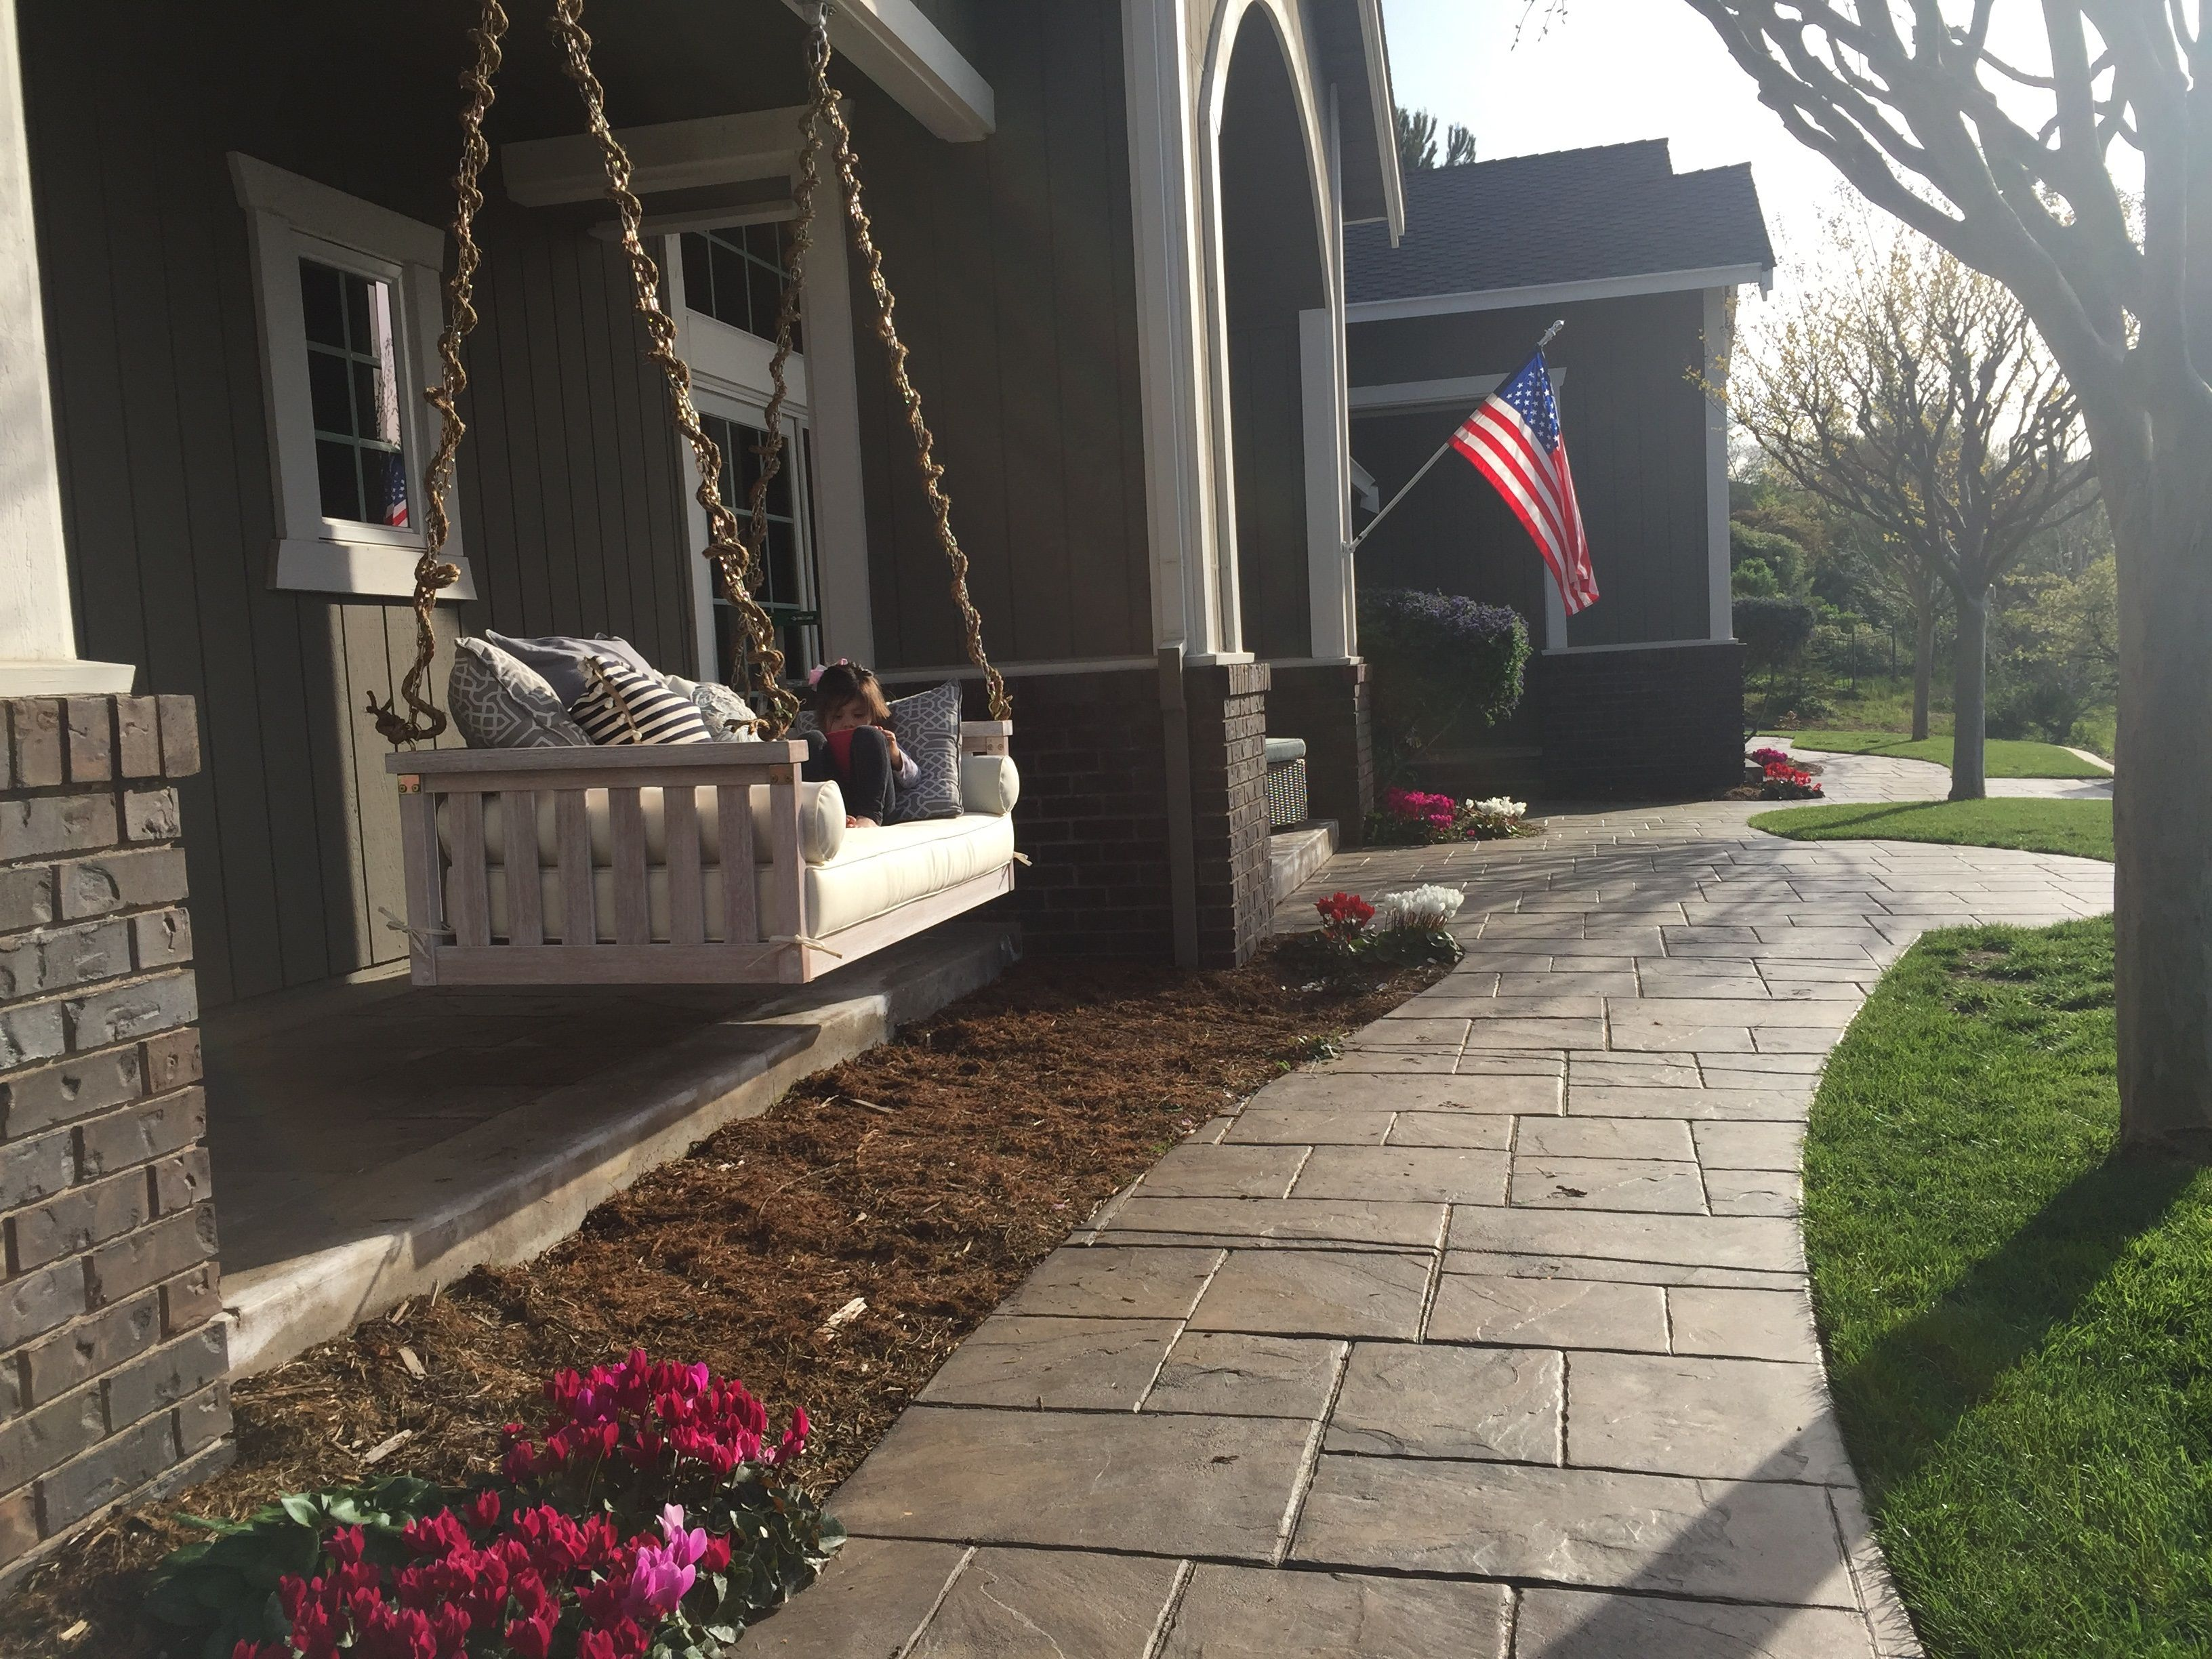 front yard porch swing american flag stamped concrete ballard front yard porch swing american flag stamped concrete ballard designs spring